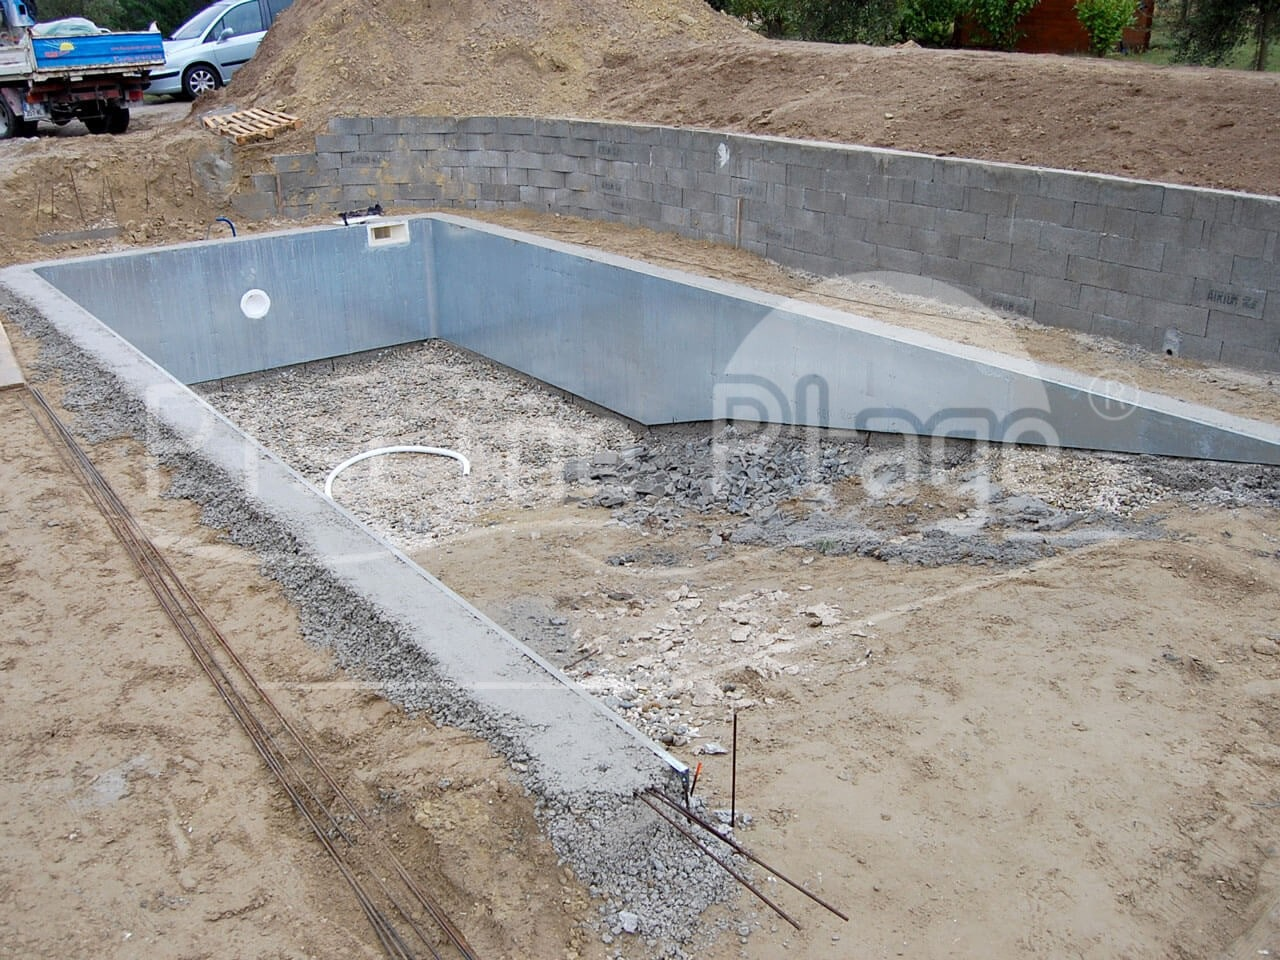 Notre technique de construction piscine plage for Construction piscine 59